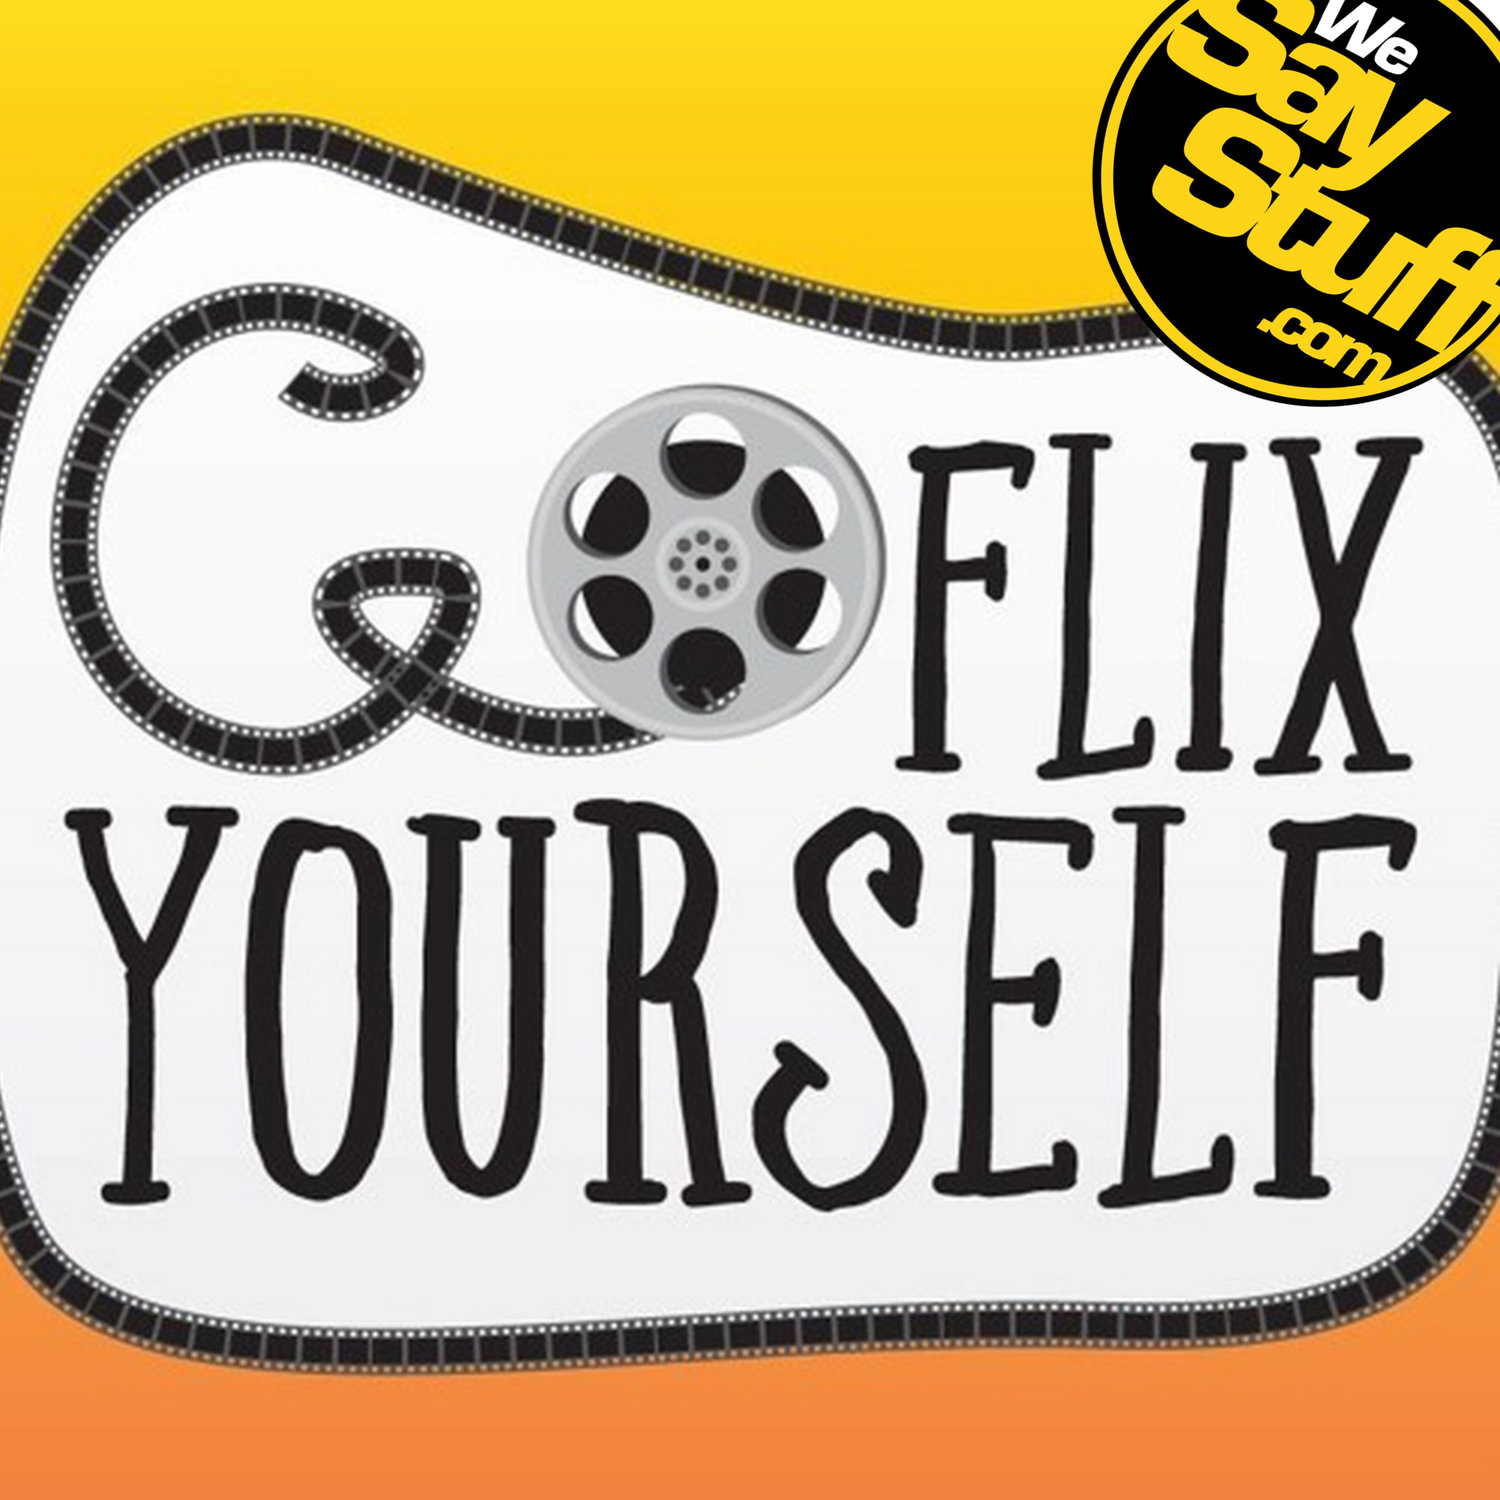 Go Flix Yourself - We Say Stuff